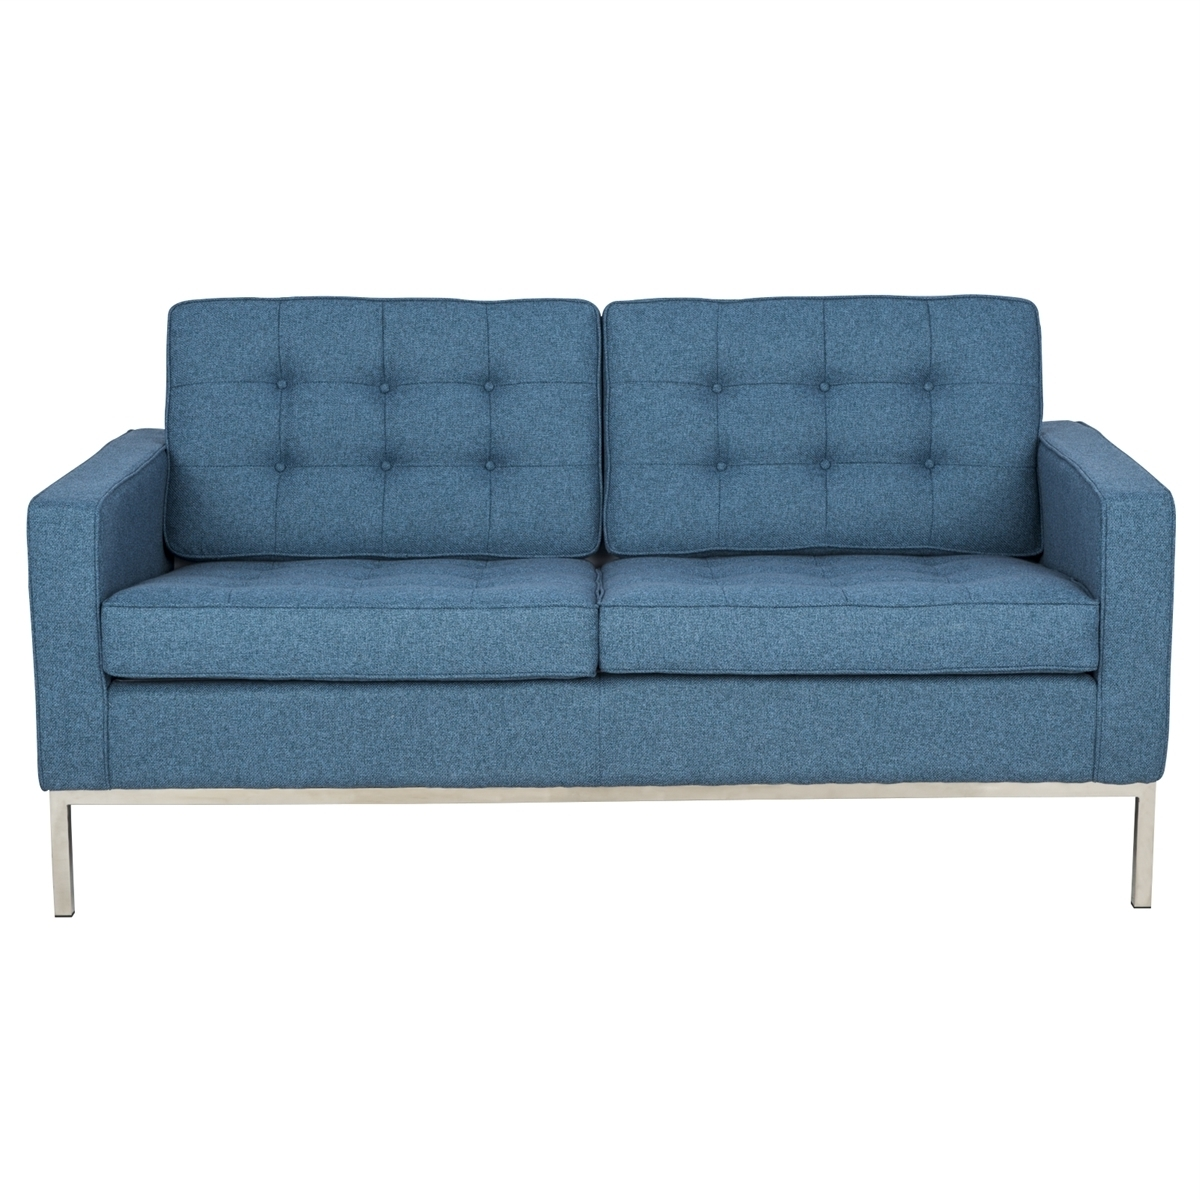 Well Known Florence Sofas And Loveseats Regarding Modern Florence Style Loveseat Sofa In Blue Tweed Cashmere Wool (View 15 of 15)